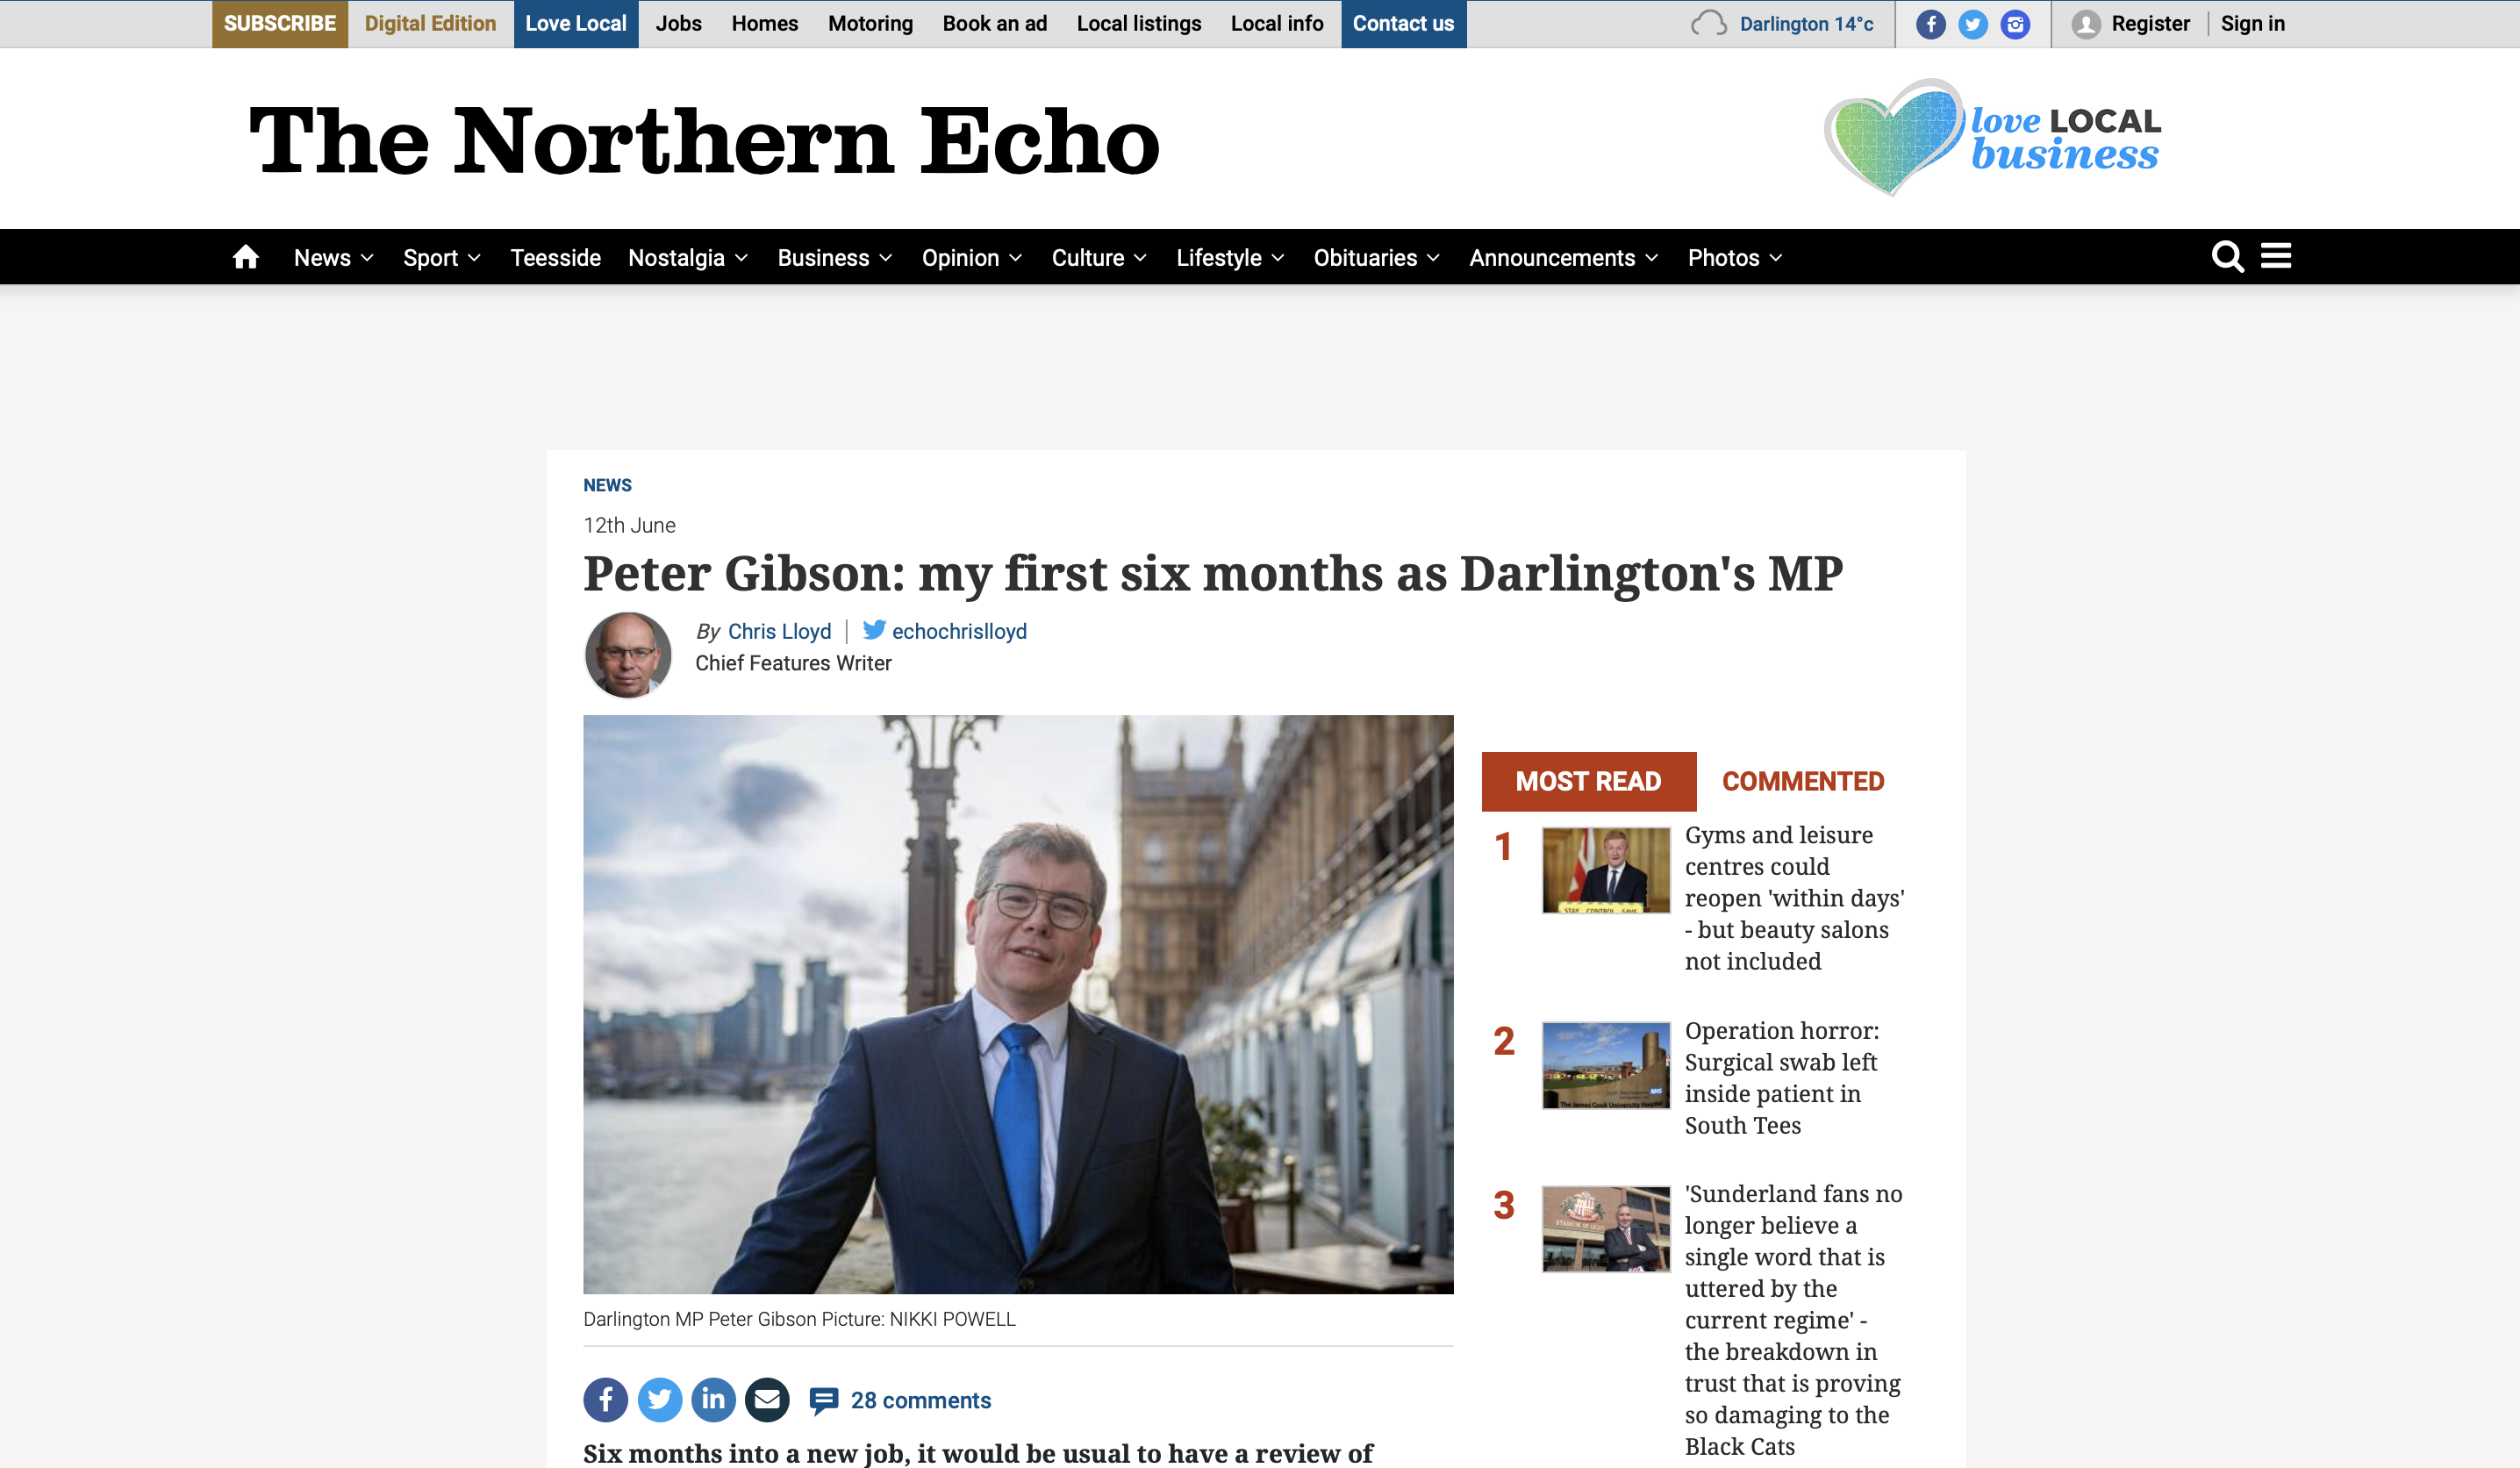 www.thenorthernecho.co.uk